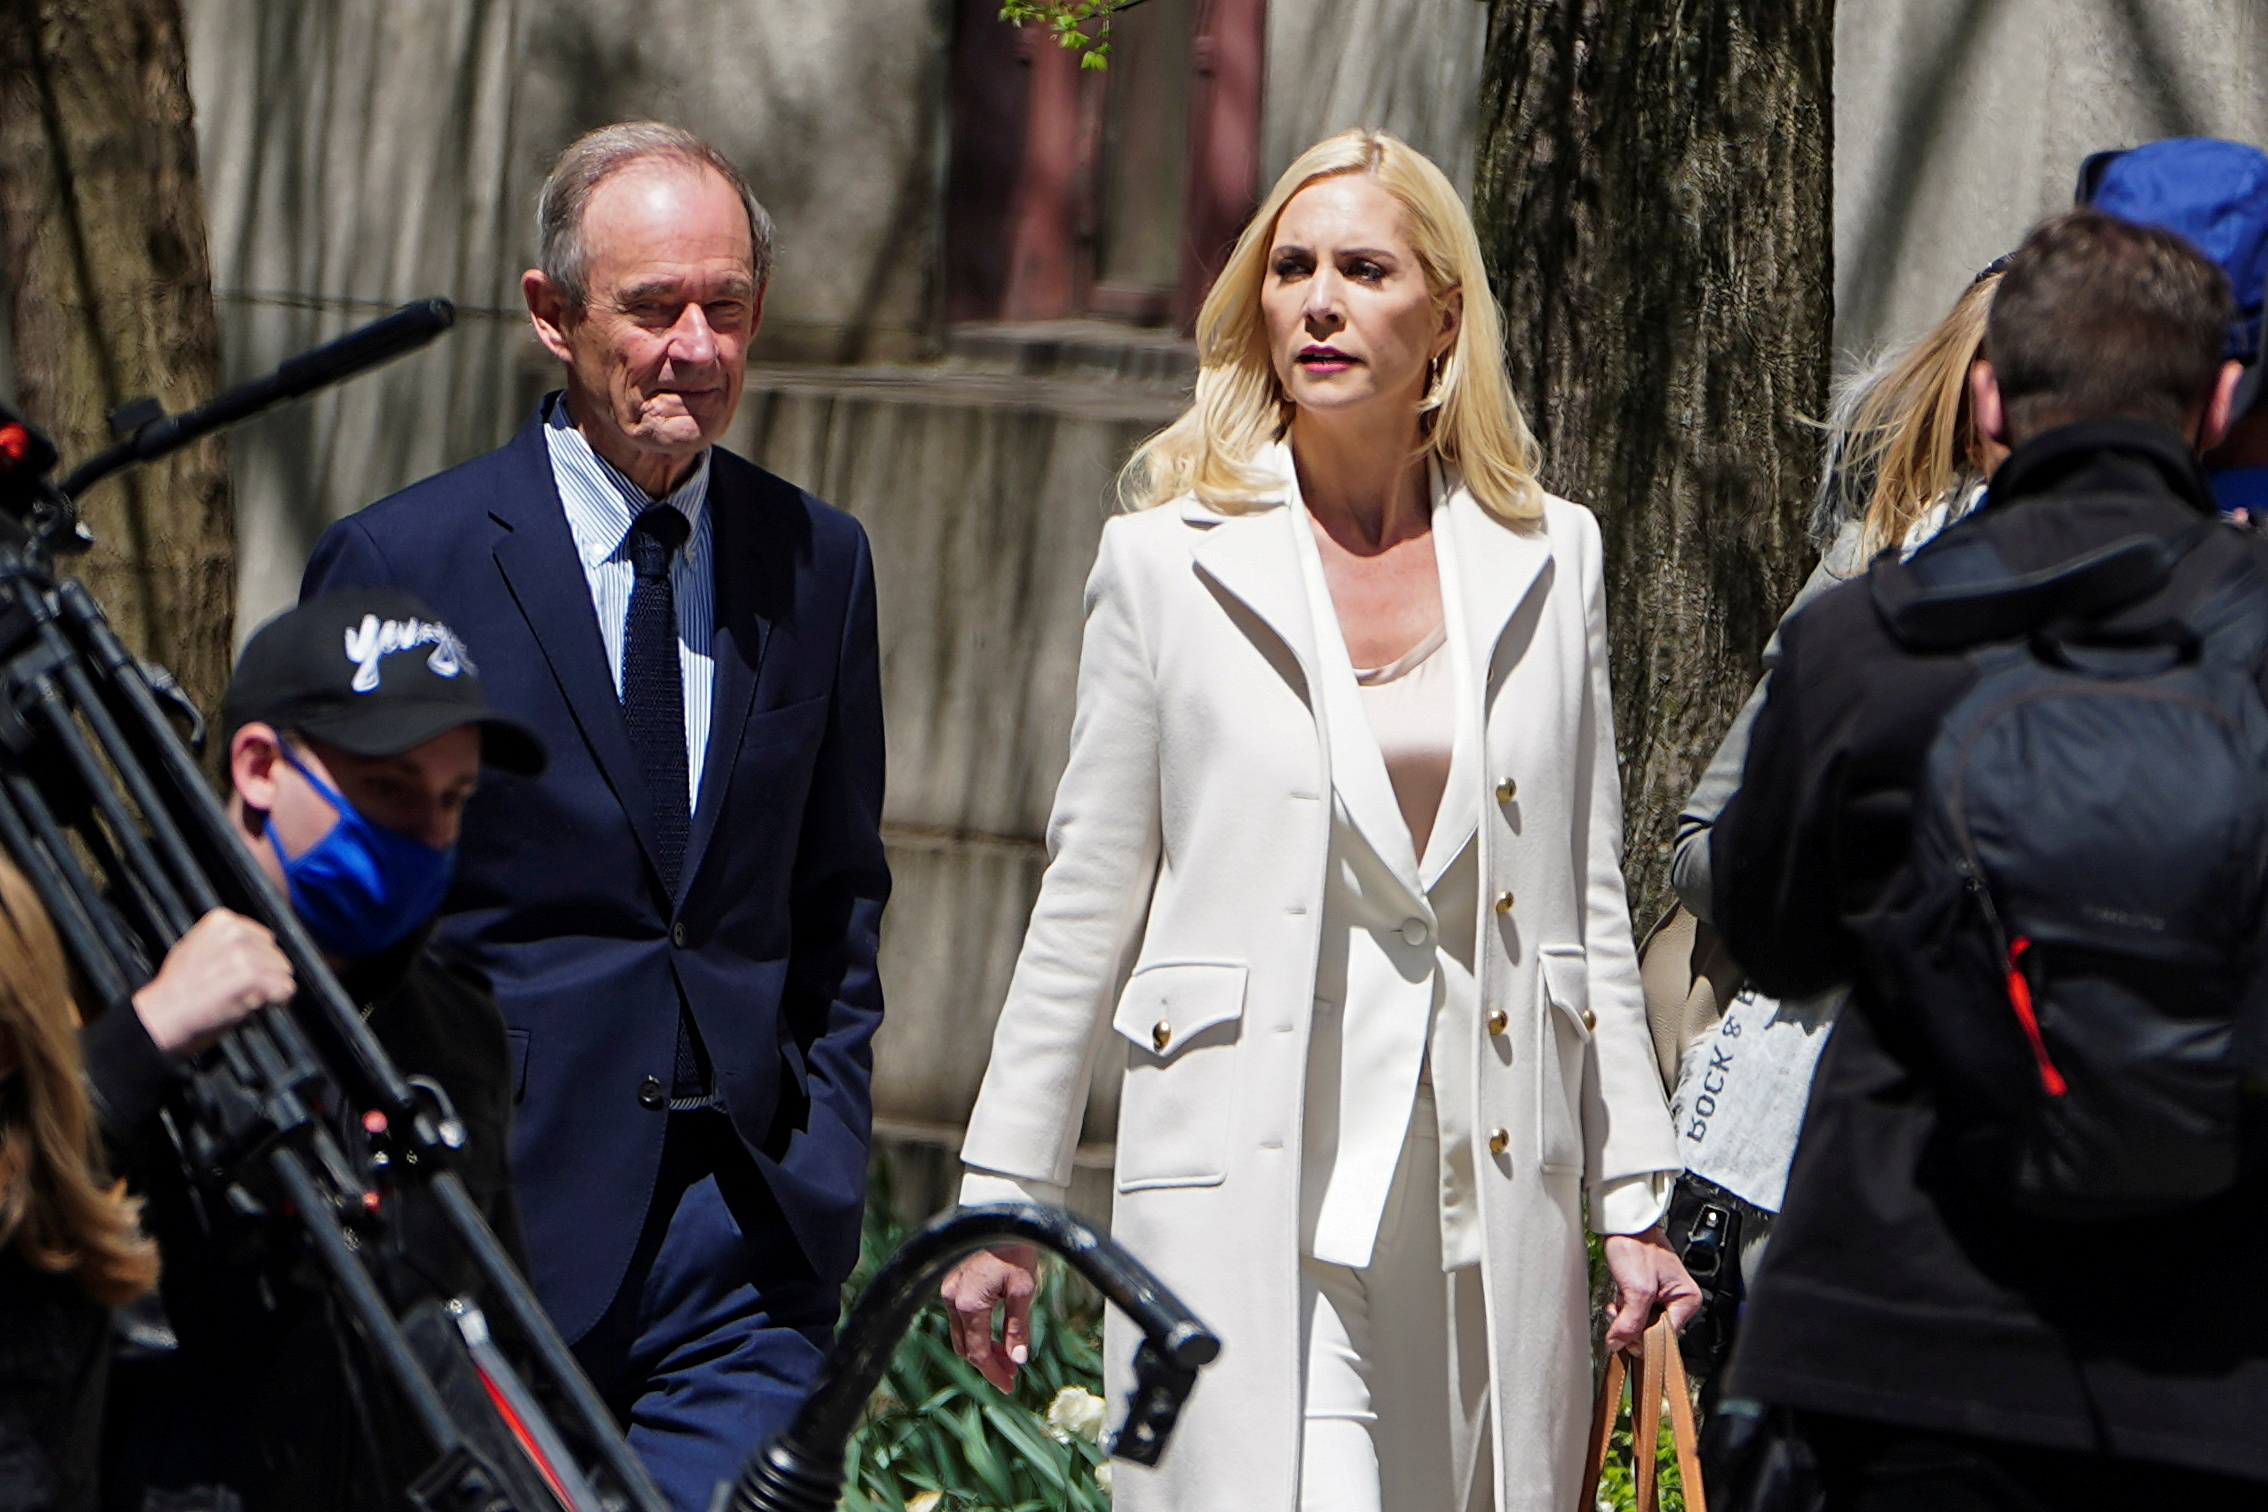 Lawyers David Boies and Sigrid McCawley arrive at Manhattan Federal Court ahead of Ghislaine Maxwell's arraignment on a new indictment, in the Manhattan borough of New York City, New York, U.S. April 23, 2021. REUTERS/Carlo Allegri